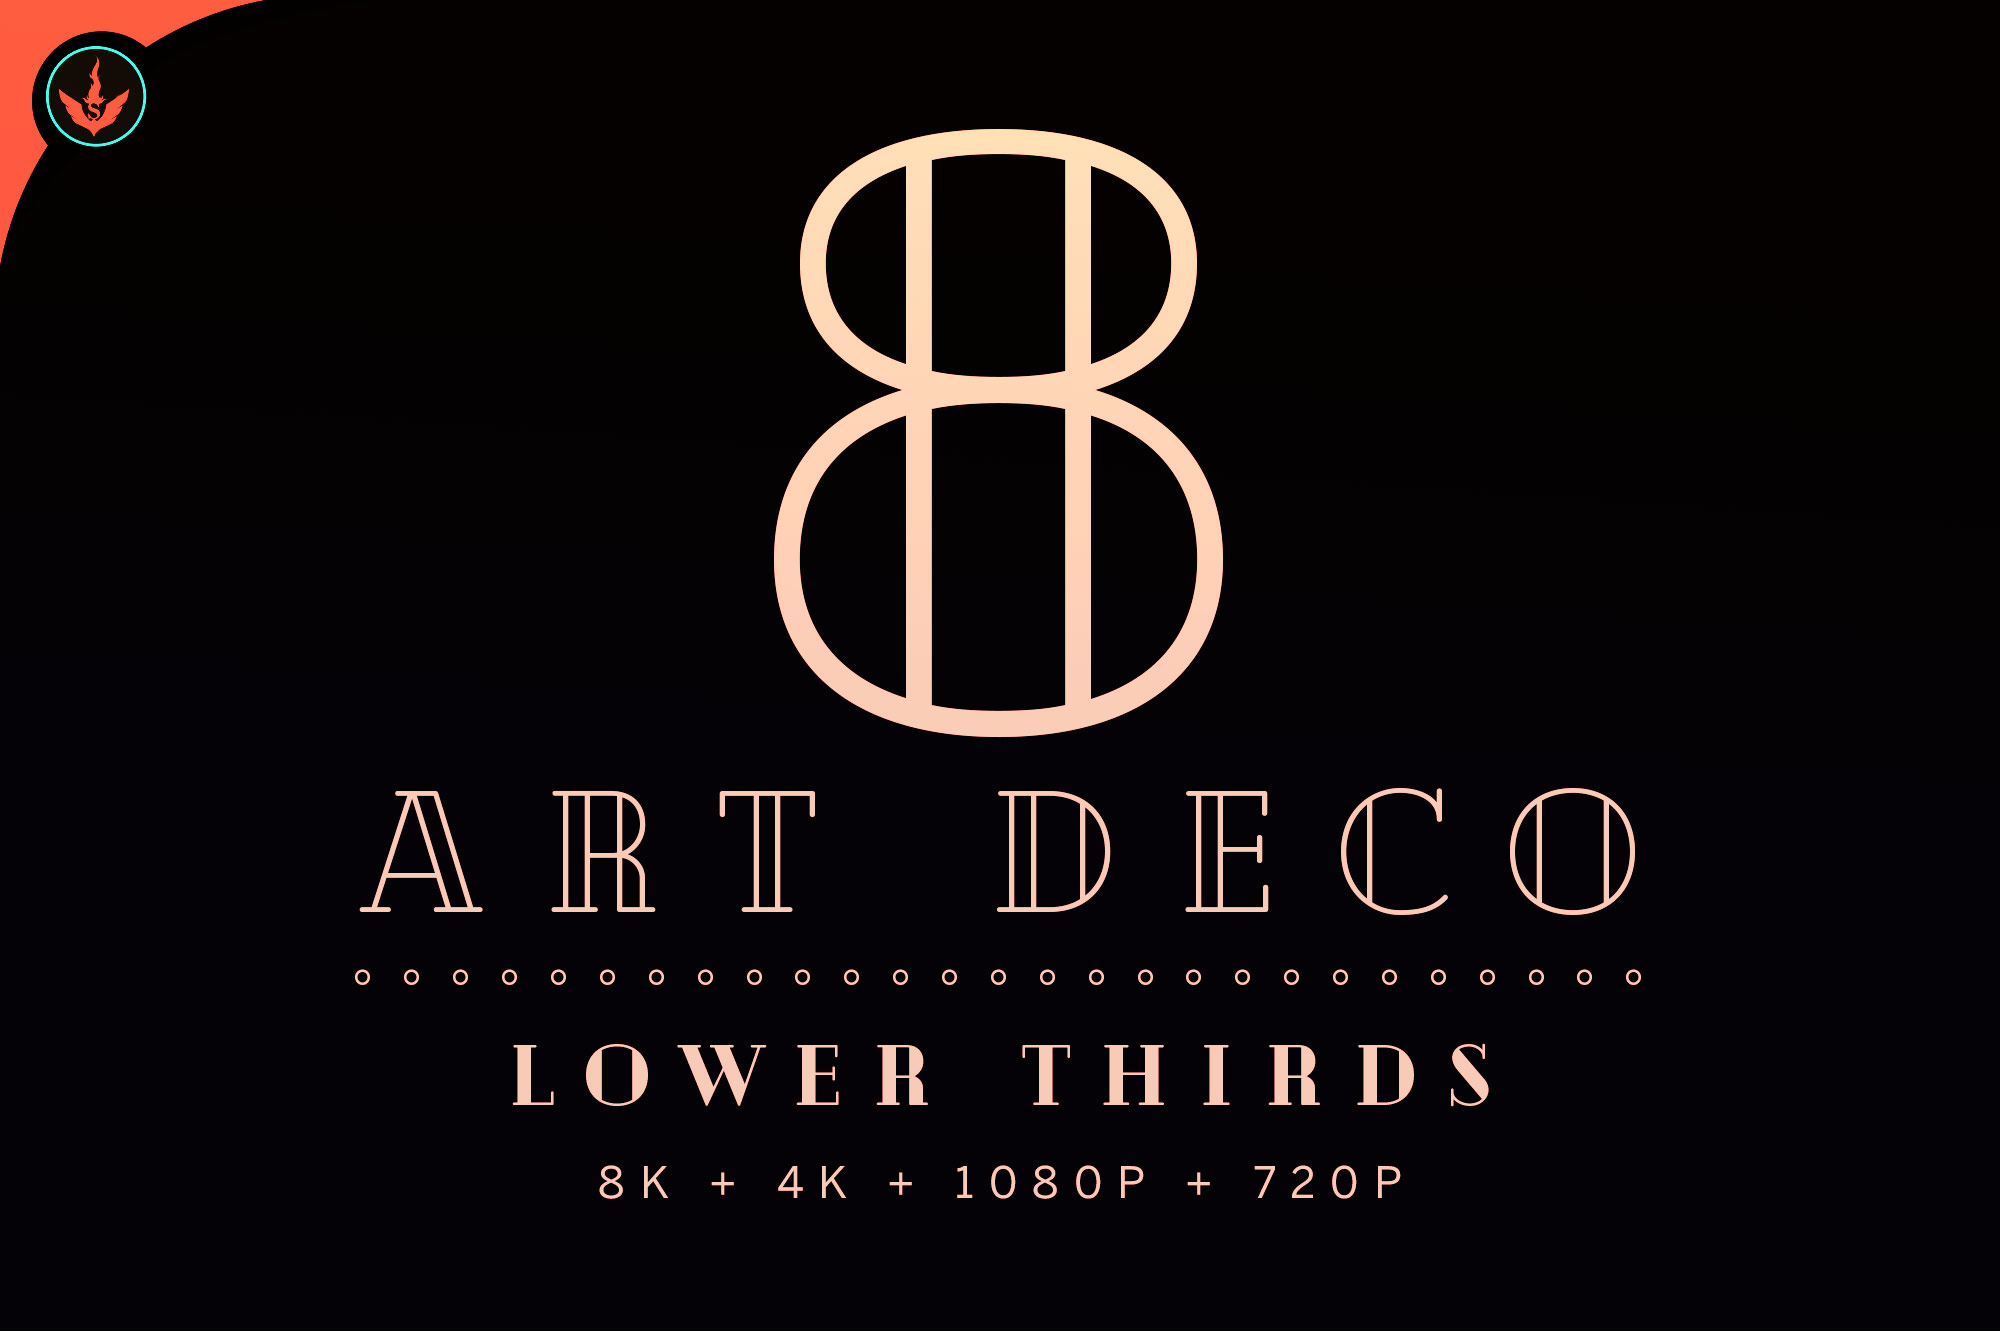 Download Free Art Deco Funeral Video Lower Thirds Graphic By Seraphimchris for Cricut Explore, Silhouette and other cutting machines.